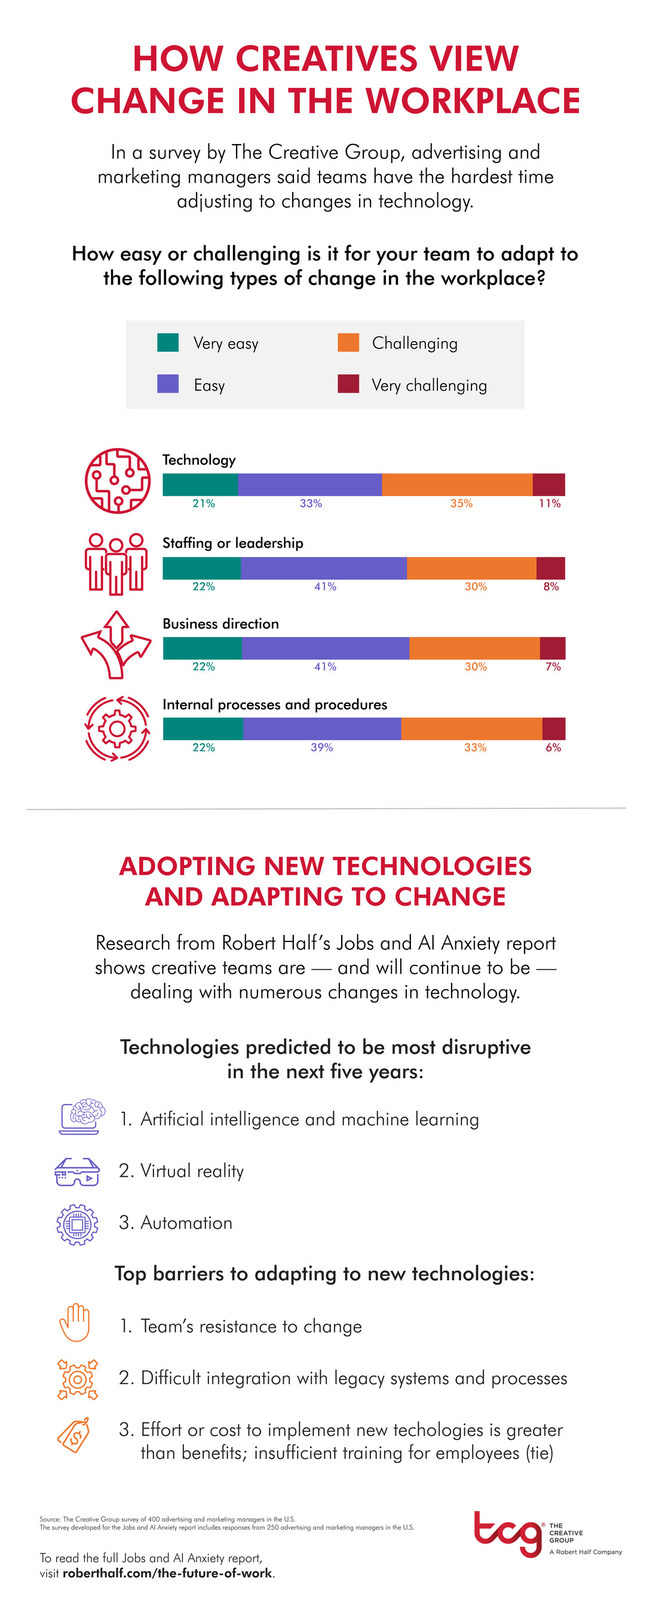 Research from The Creative Group looks at technology's impact on the creative workplace. For additional information, visit https://www.roberthalf.com/blog/the-future-of-work/how-creatives-view-change-in-the-workplace.